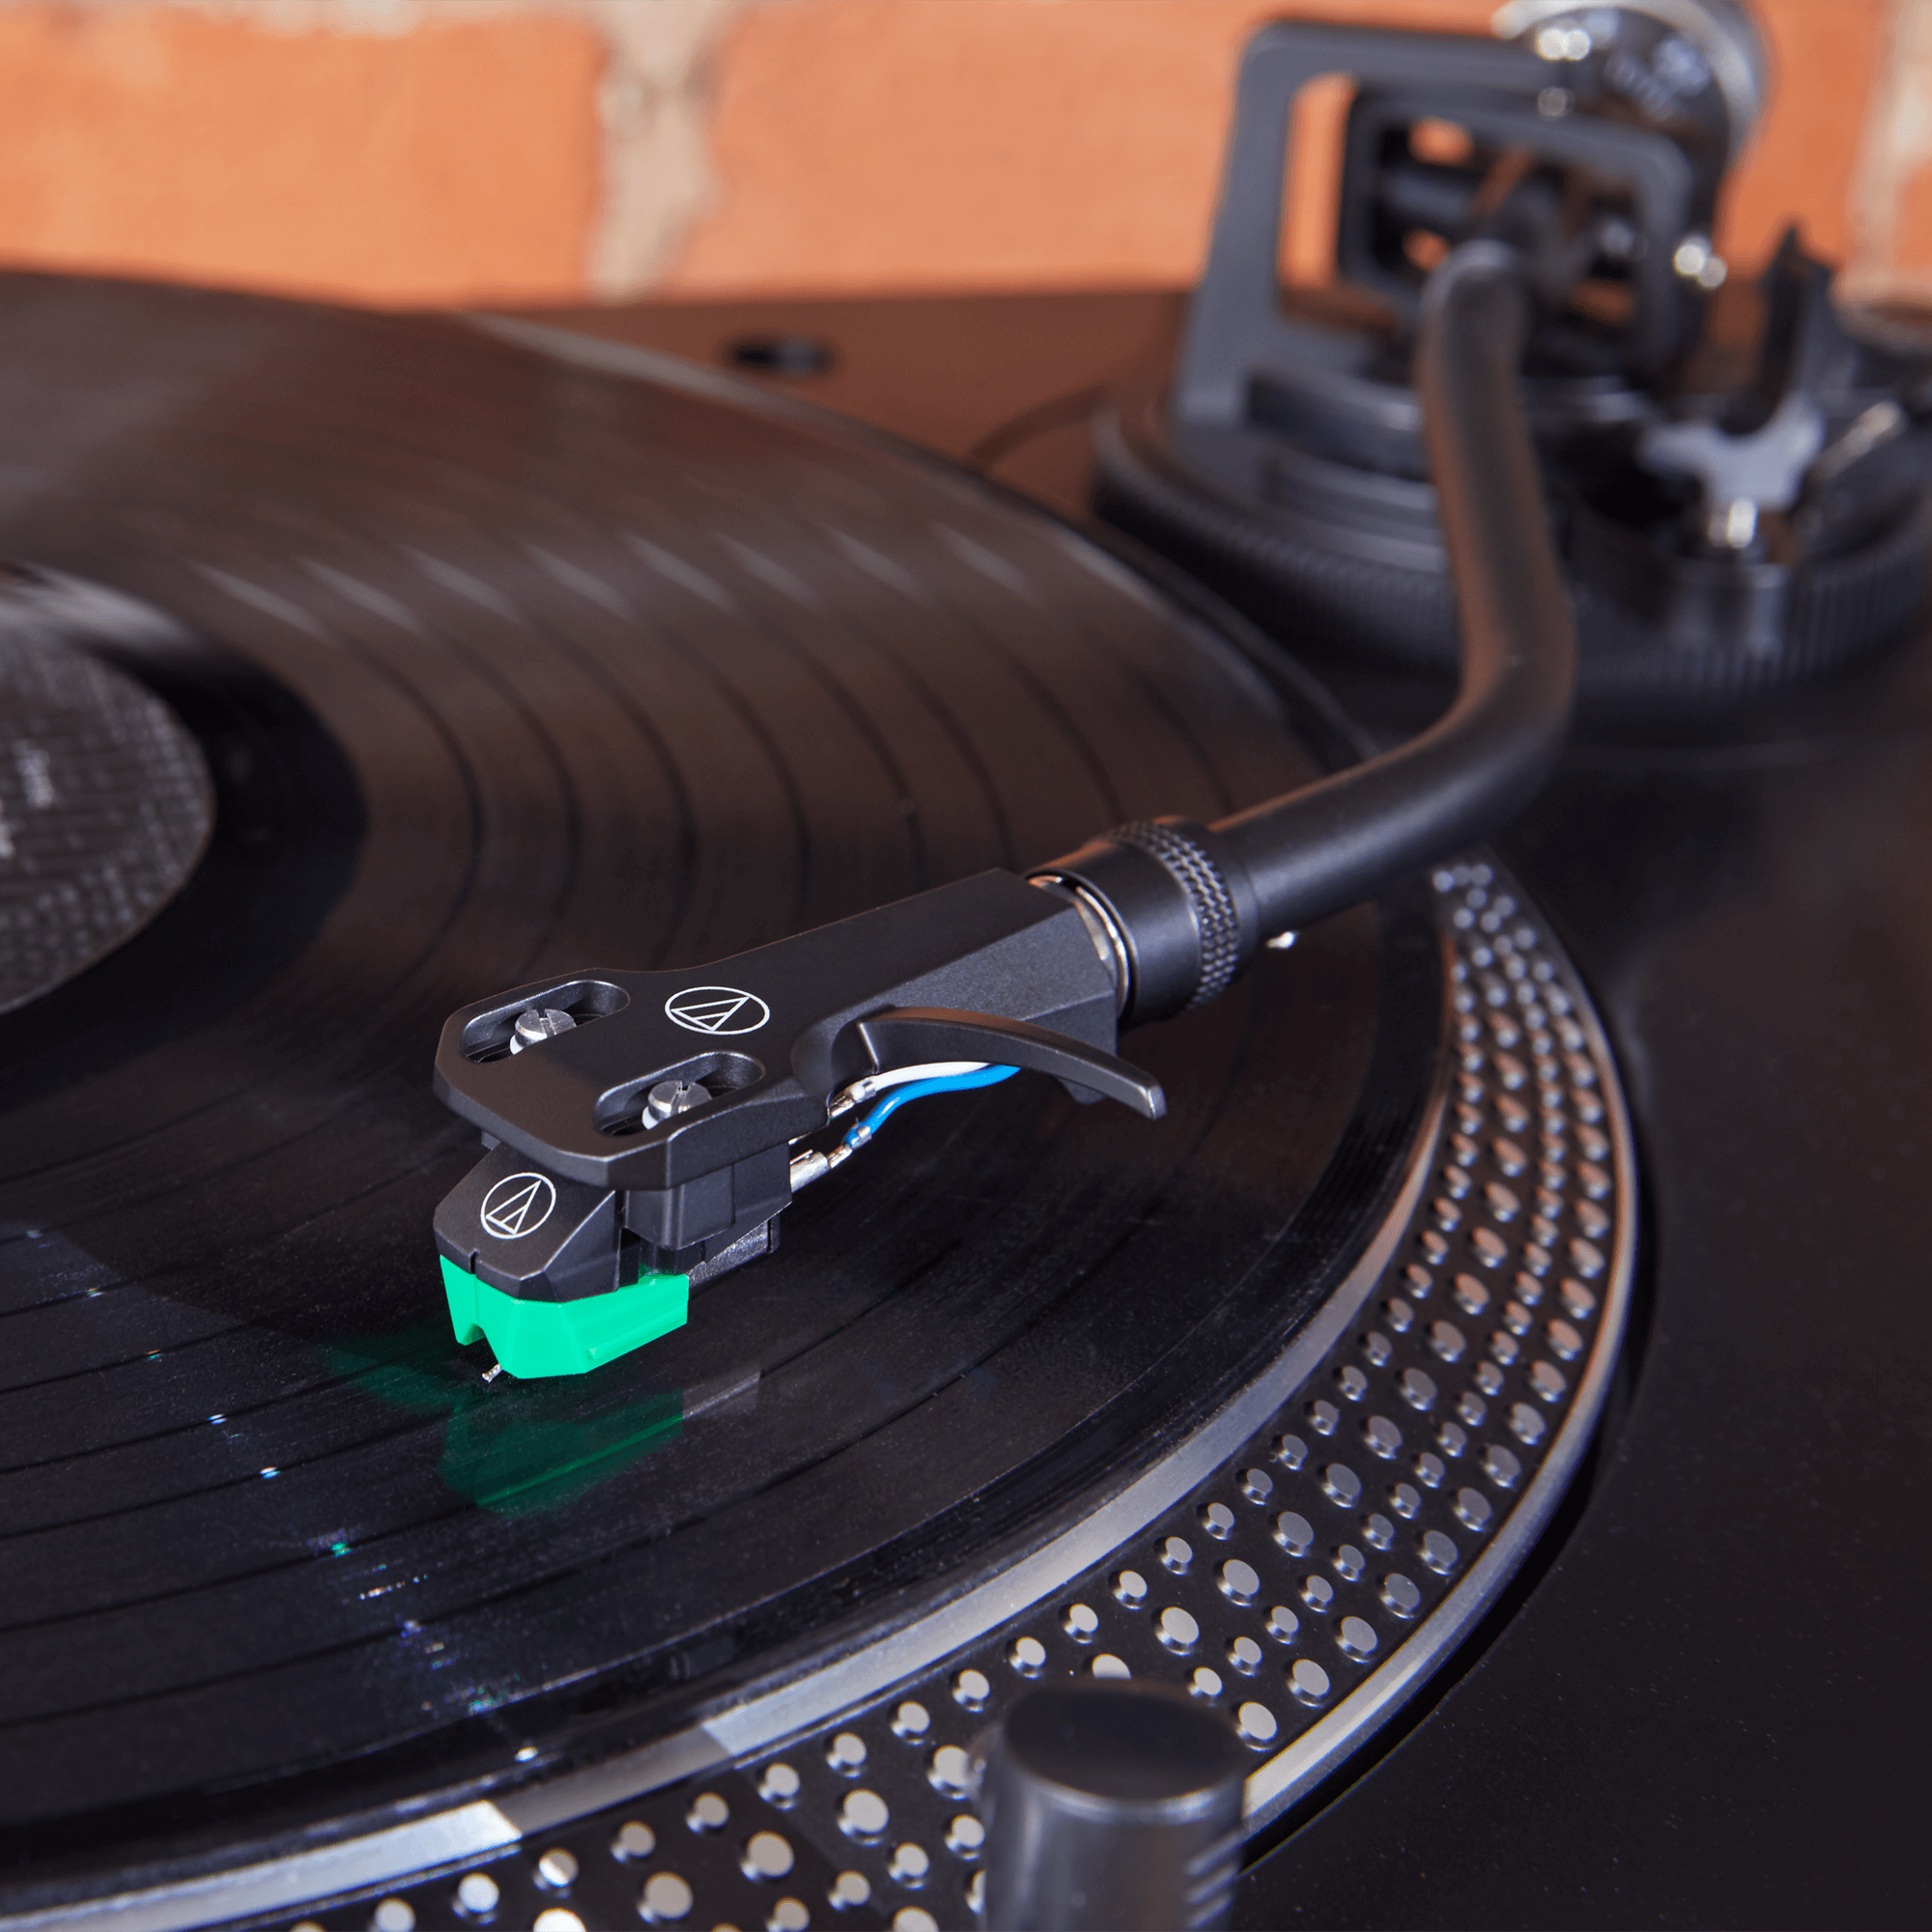 AT-LP120XUSB - Direct-Drive Turntable (Analog & USB) | Audio-Technica